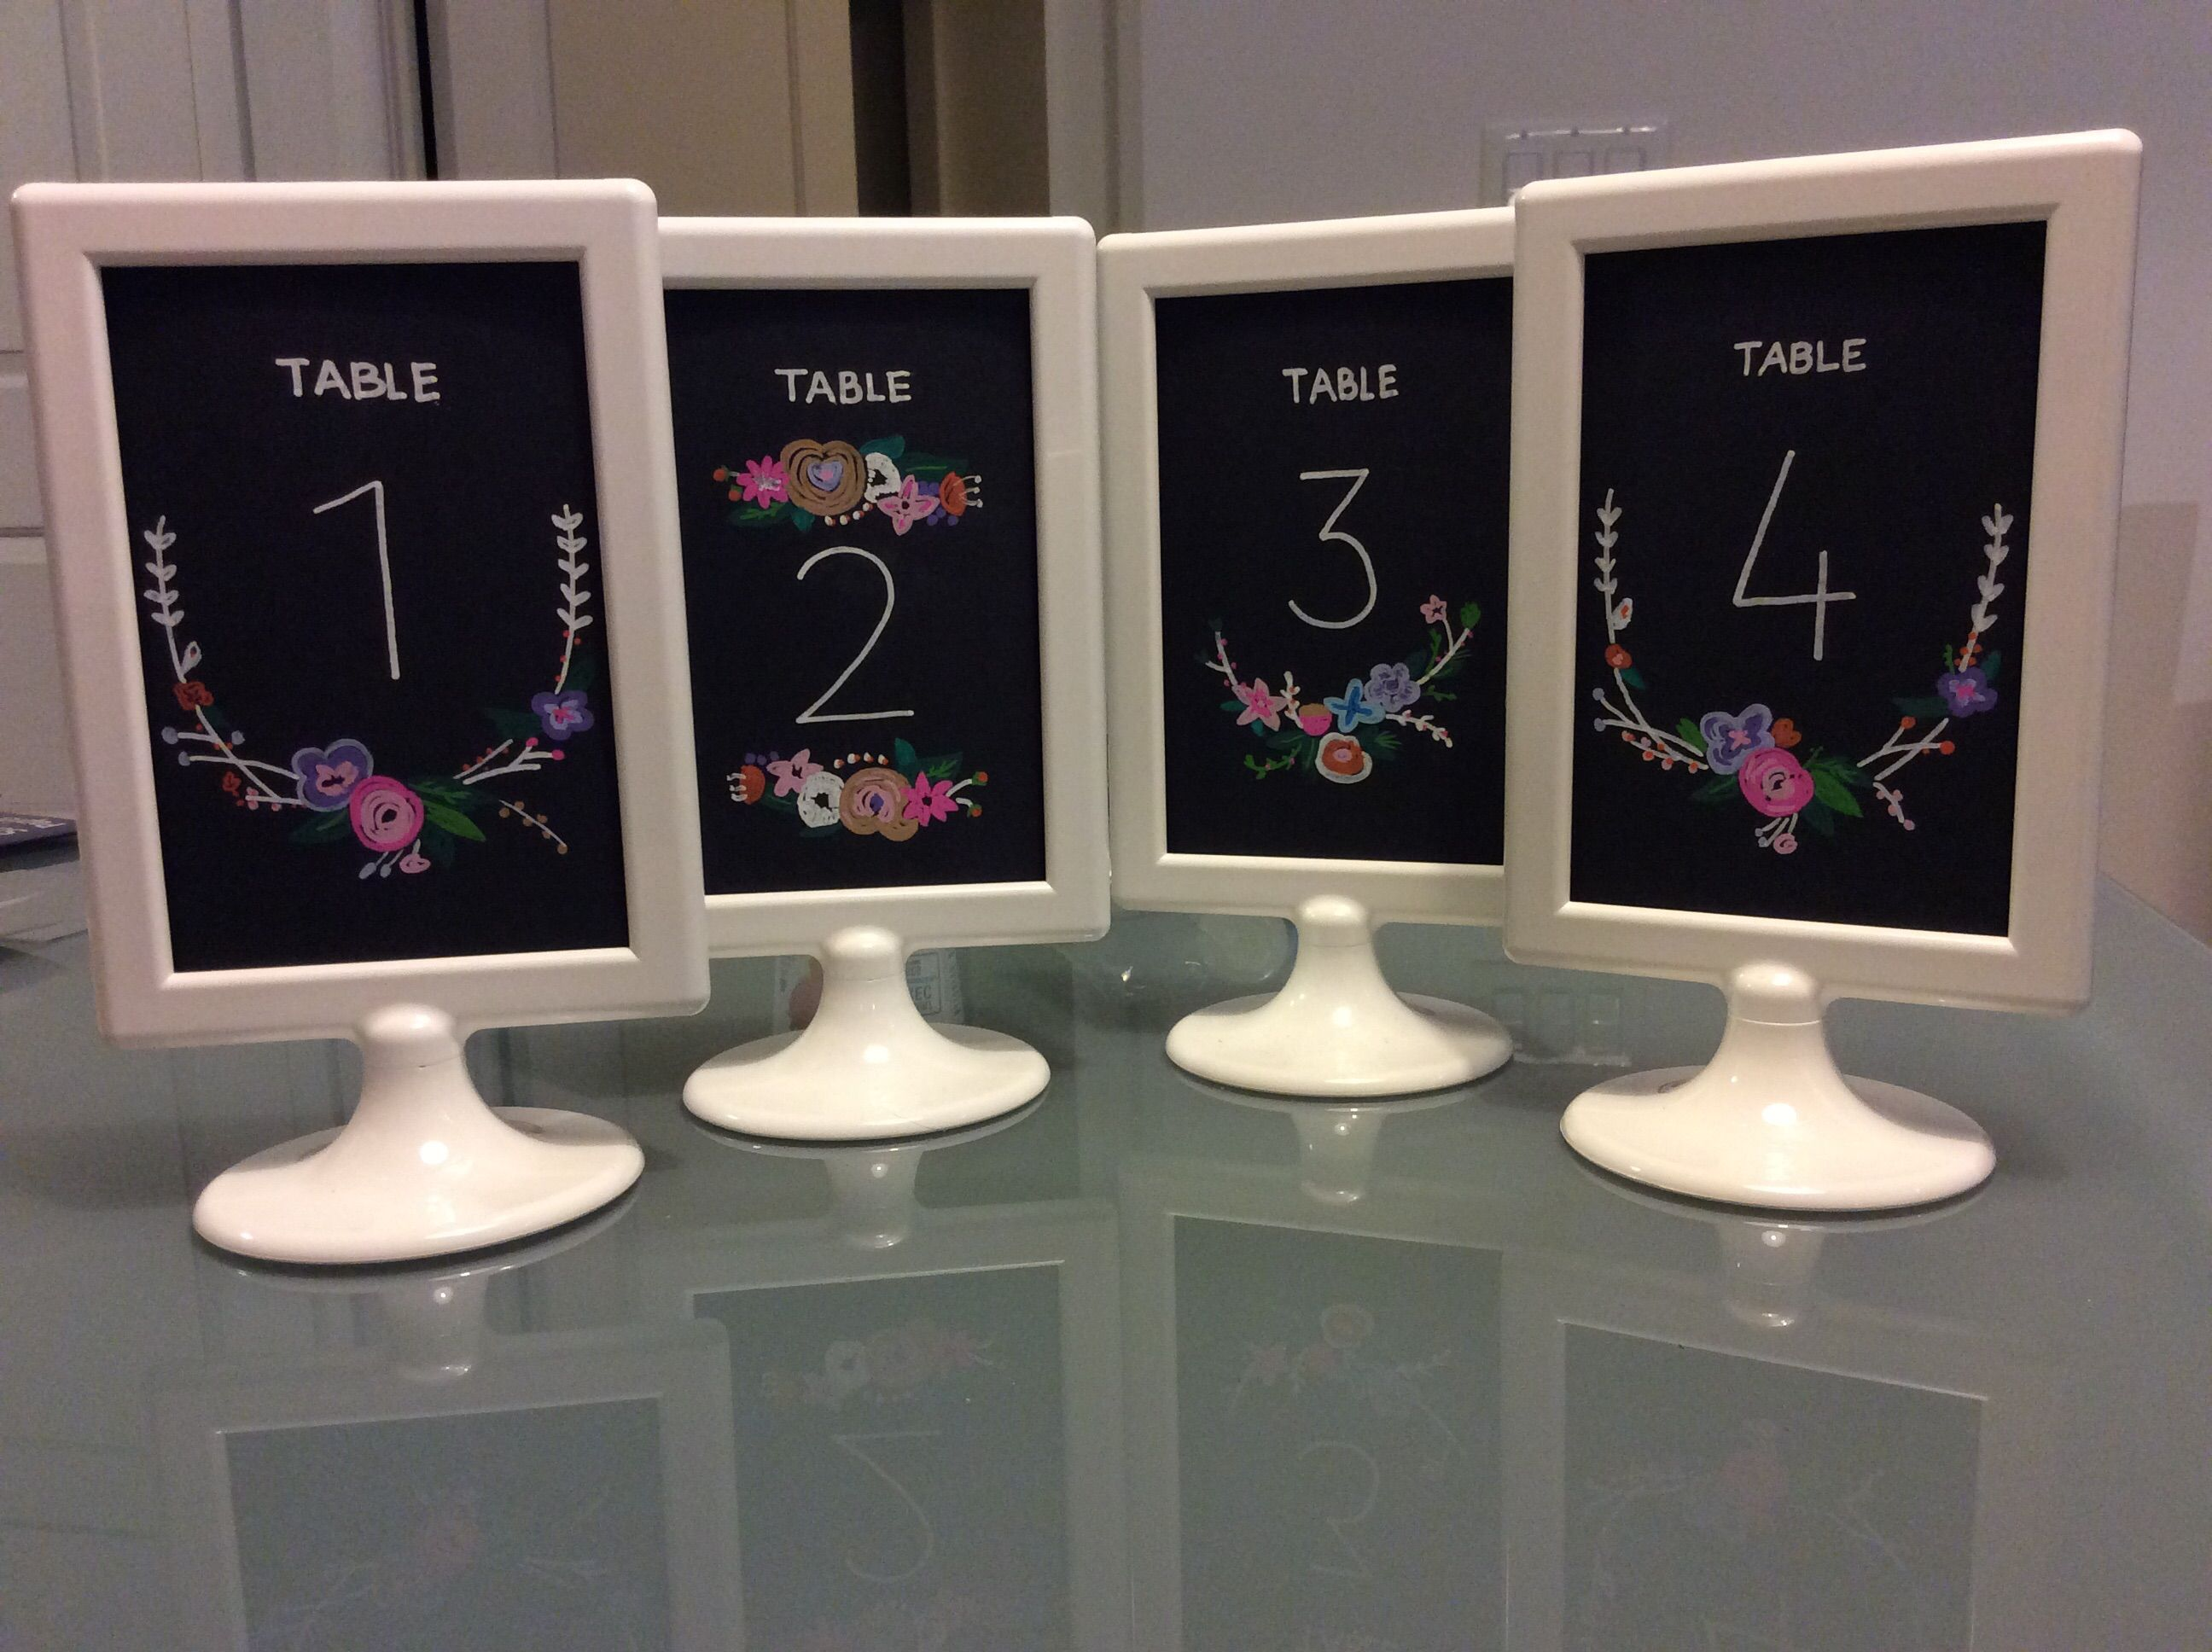 ikea tolsby frame w chalkboard look table numbers lauren and